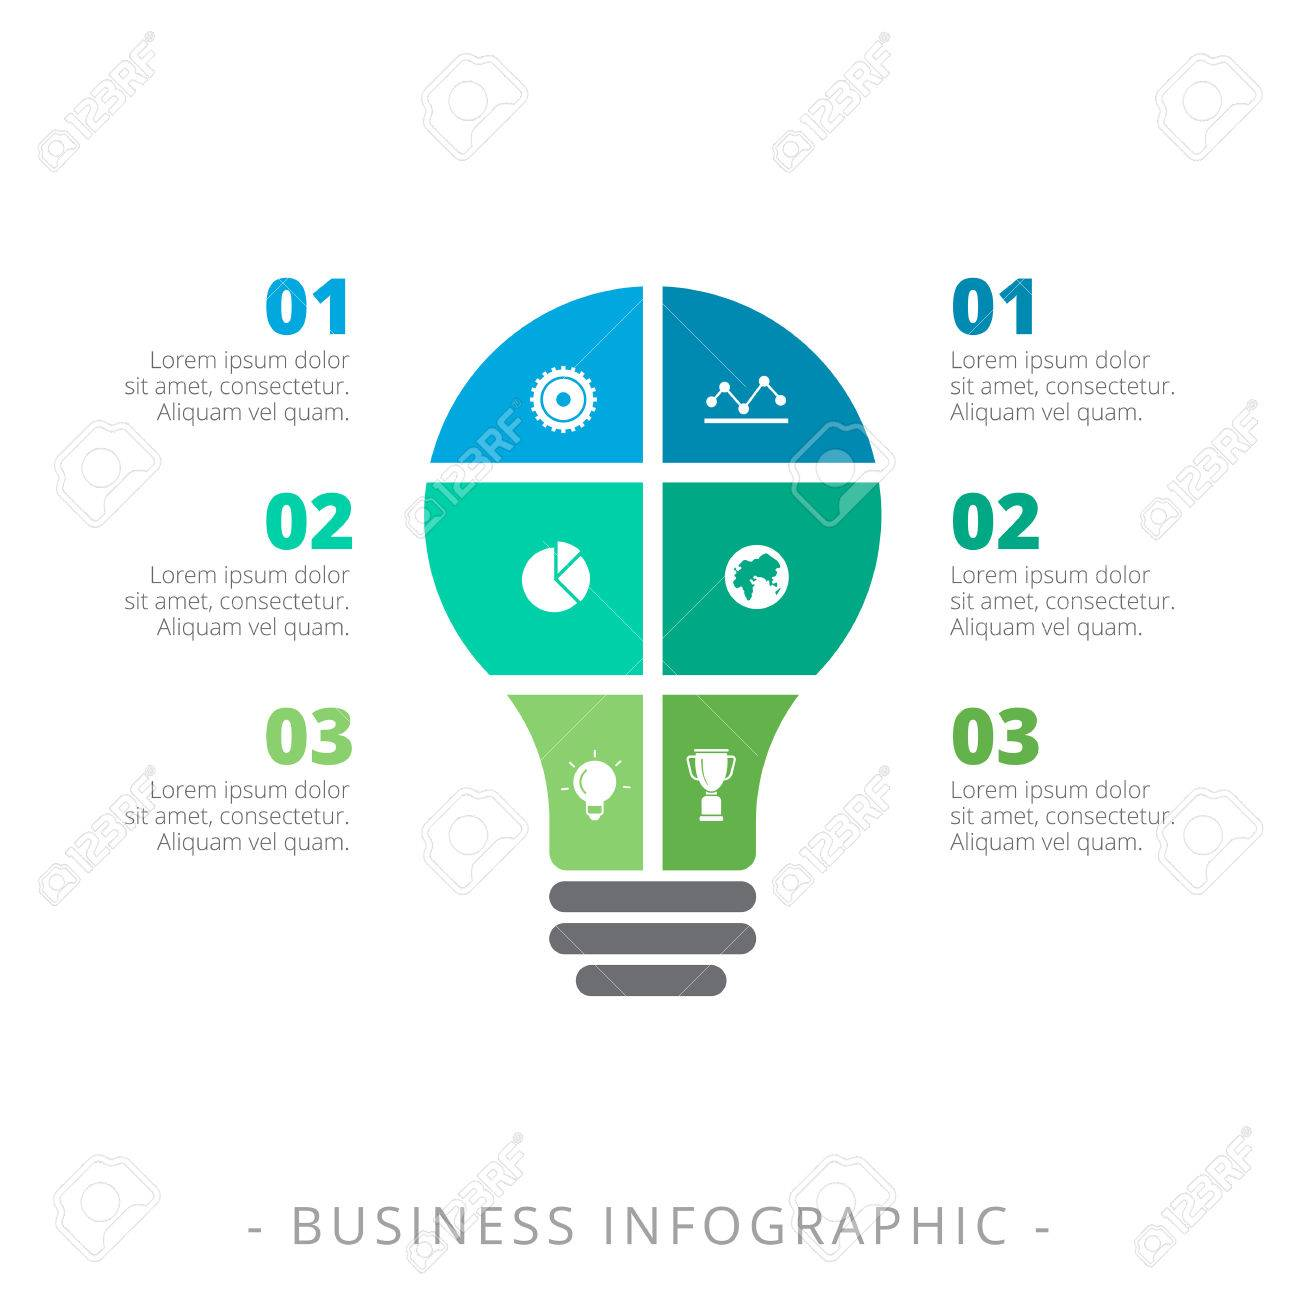 editable infographic template of three step process chart